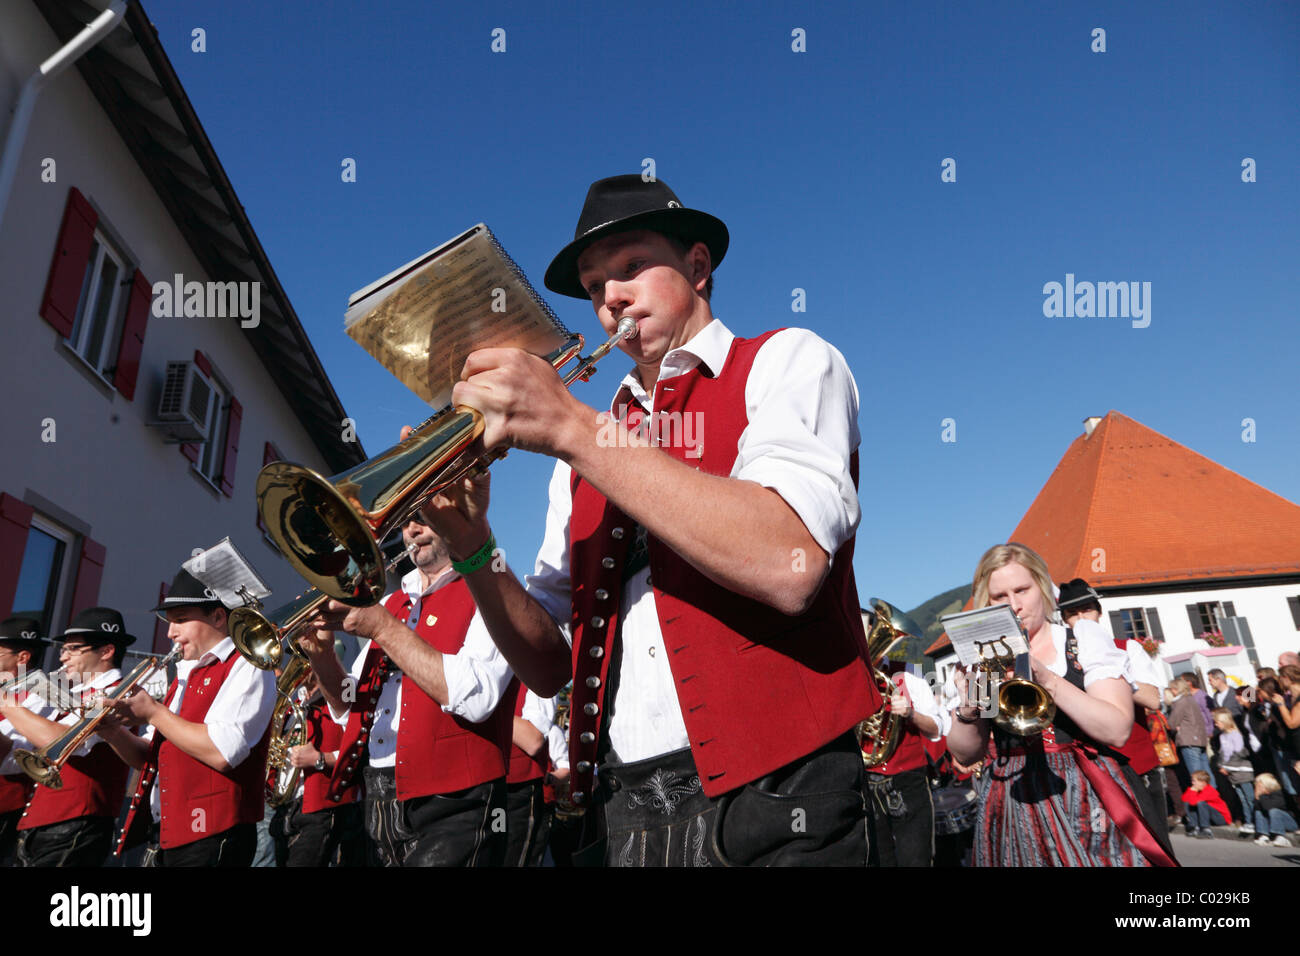 Harmoniemusik Pfronten musical society, parade to celebrate the returning of the cattle to their respective owners, - Stock Image